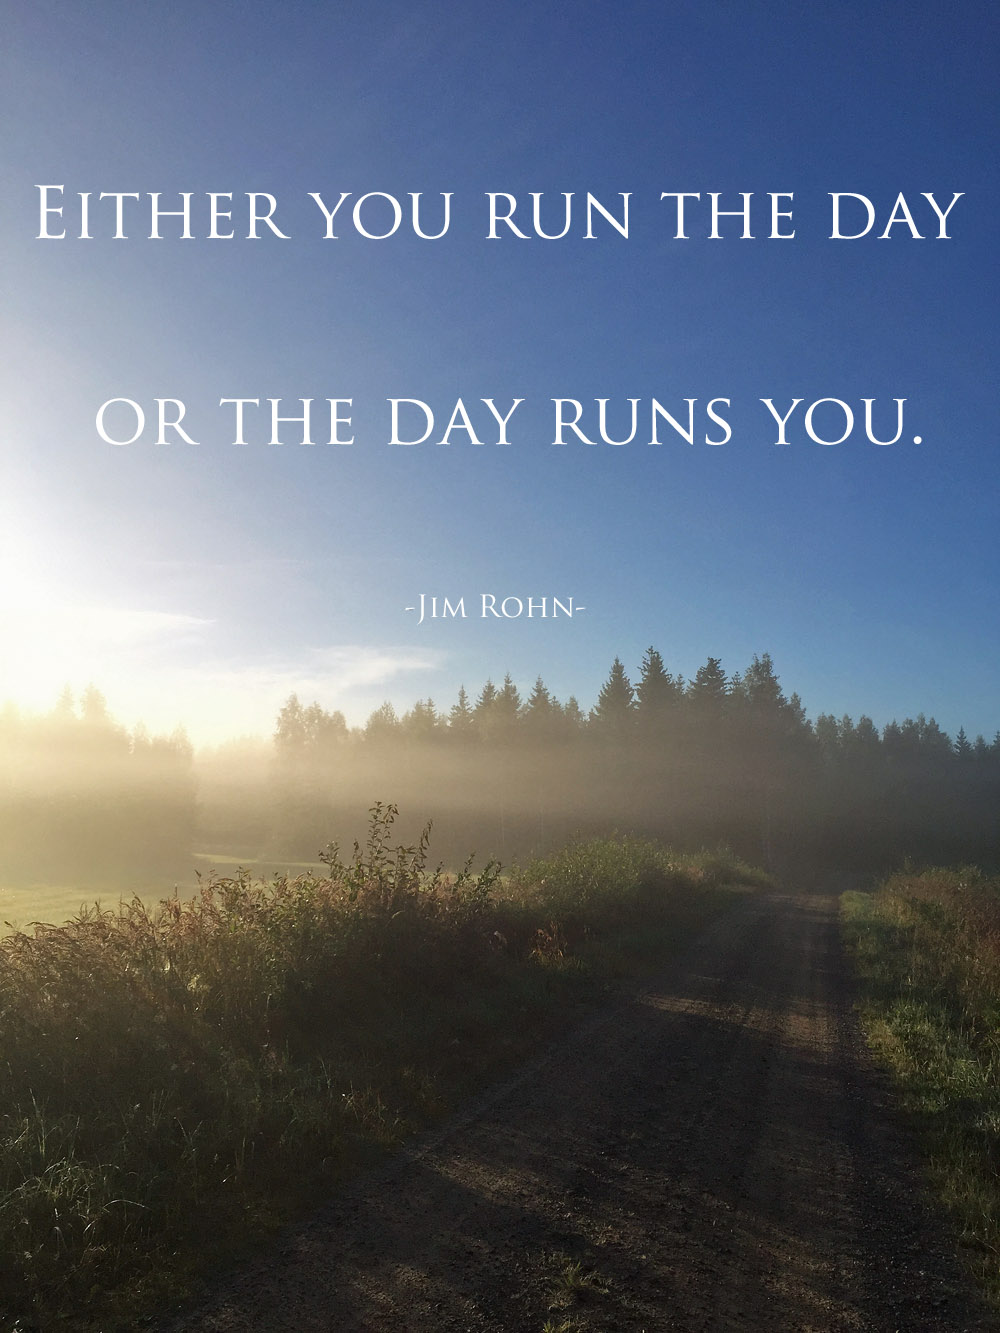 RUN-YOUR-DAY-QUOTE